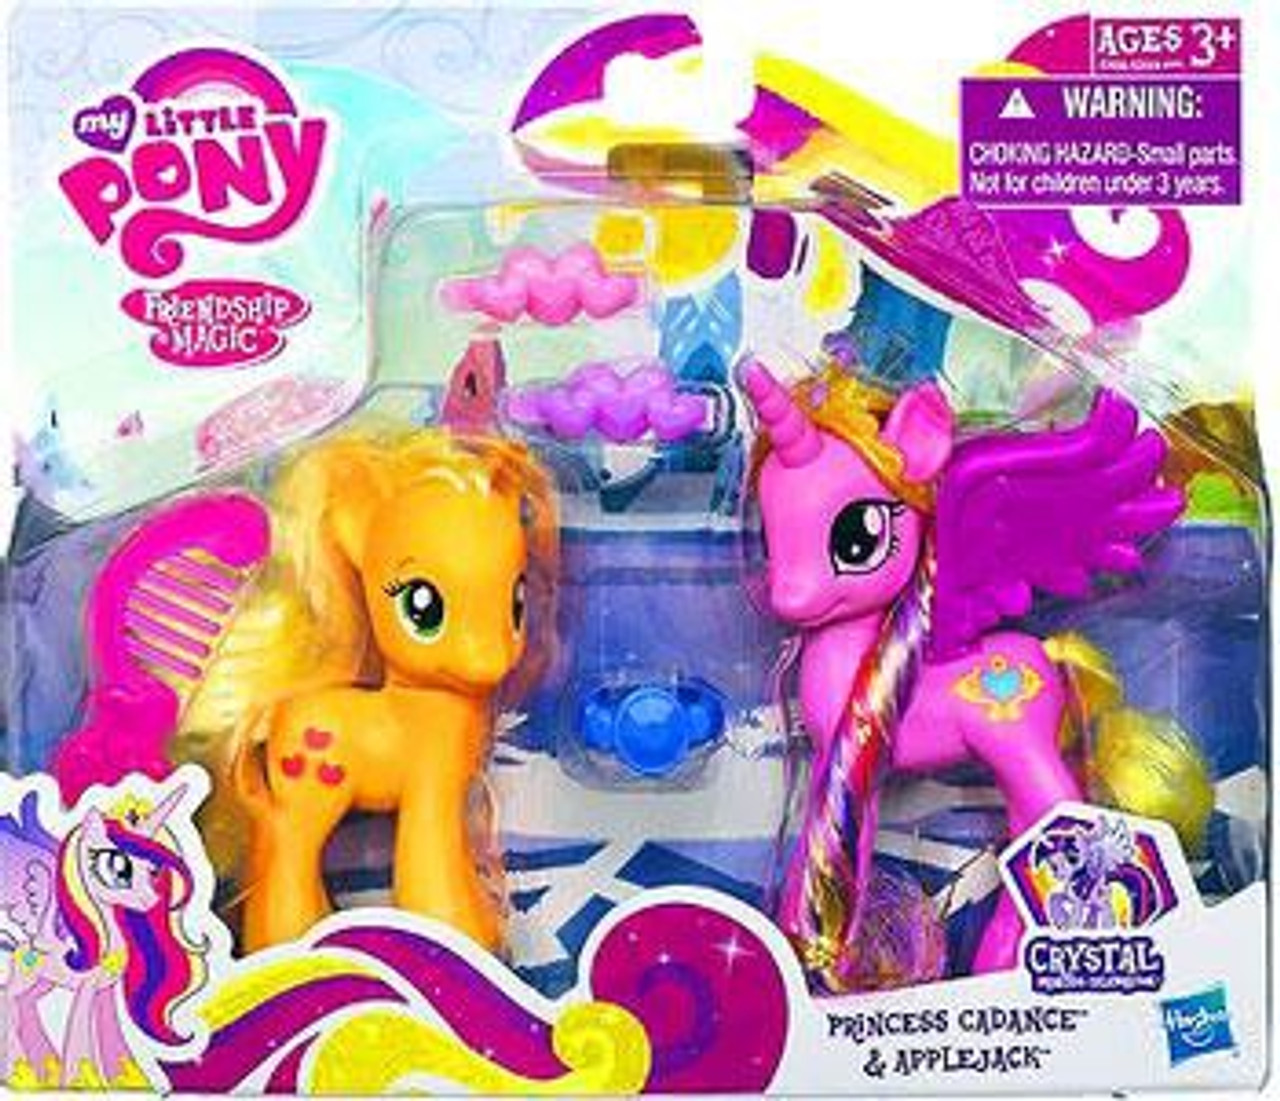 My Little Pony Friendship is Magic Crystal Empire Princess Cadance & Applejack Figure 2-Pack